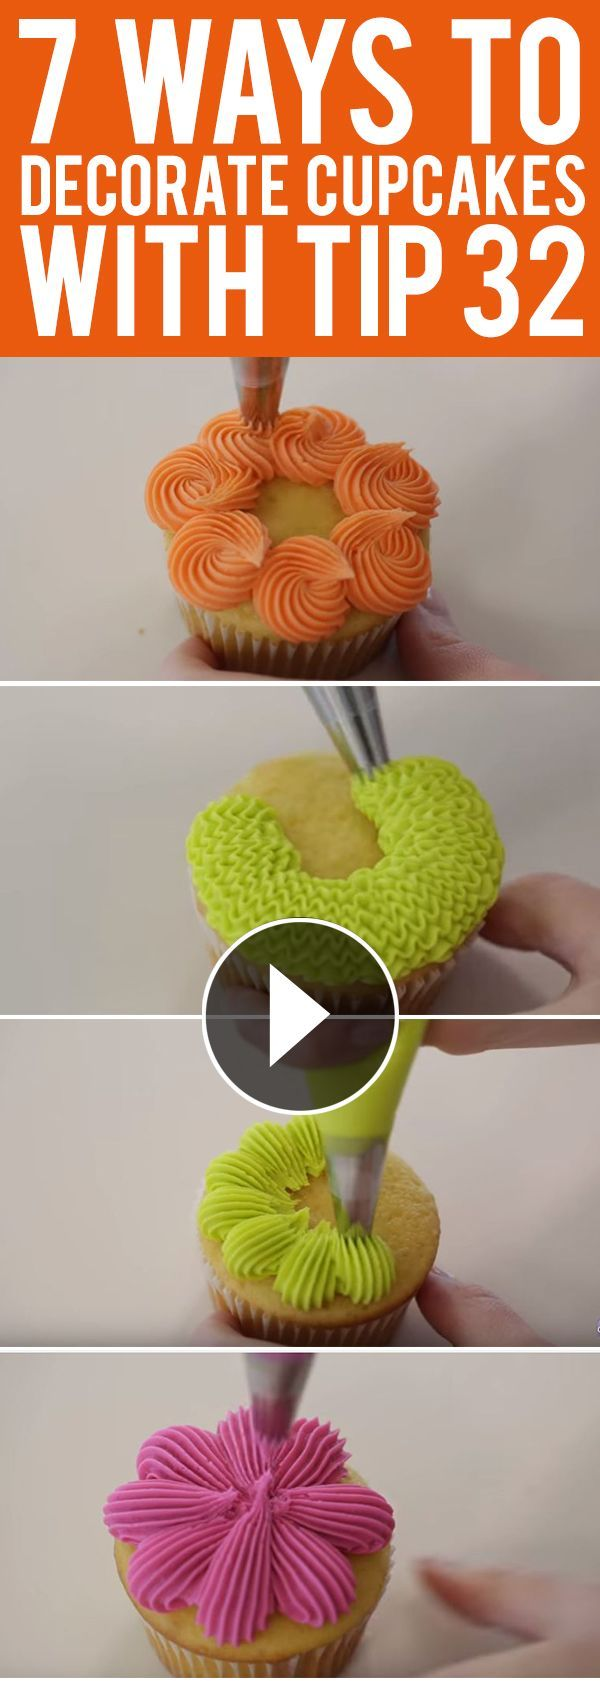 Learn 7 easy ways to decorate cupcakes with Wilton decorating tip no. 32! | Visit http://gwyl.io/ for more diy/kids/pets videos